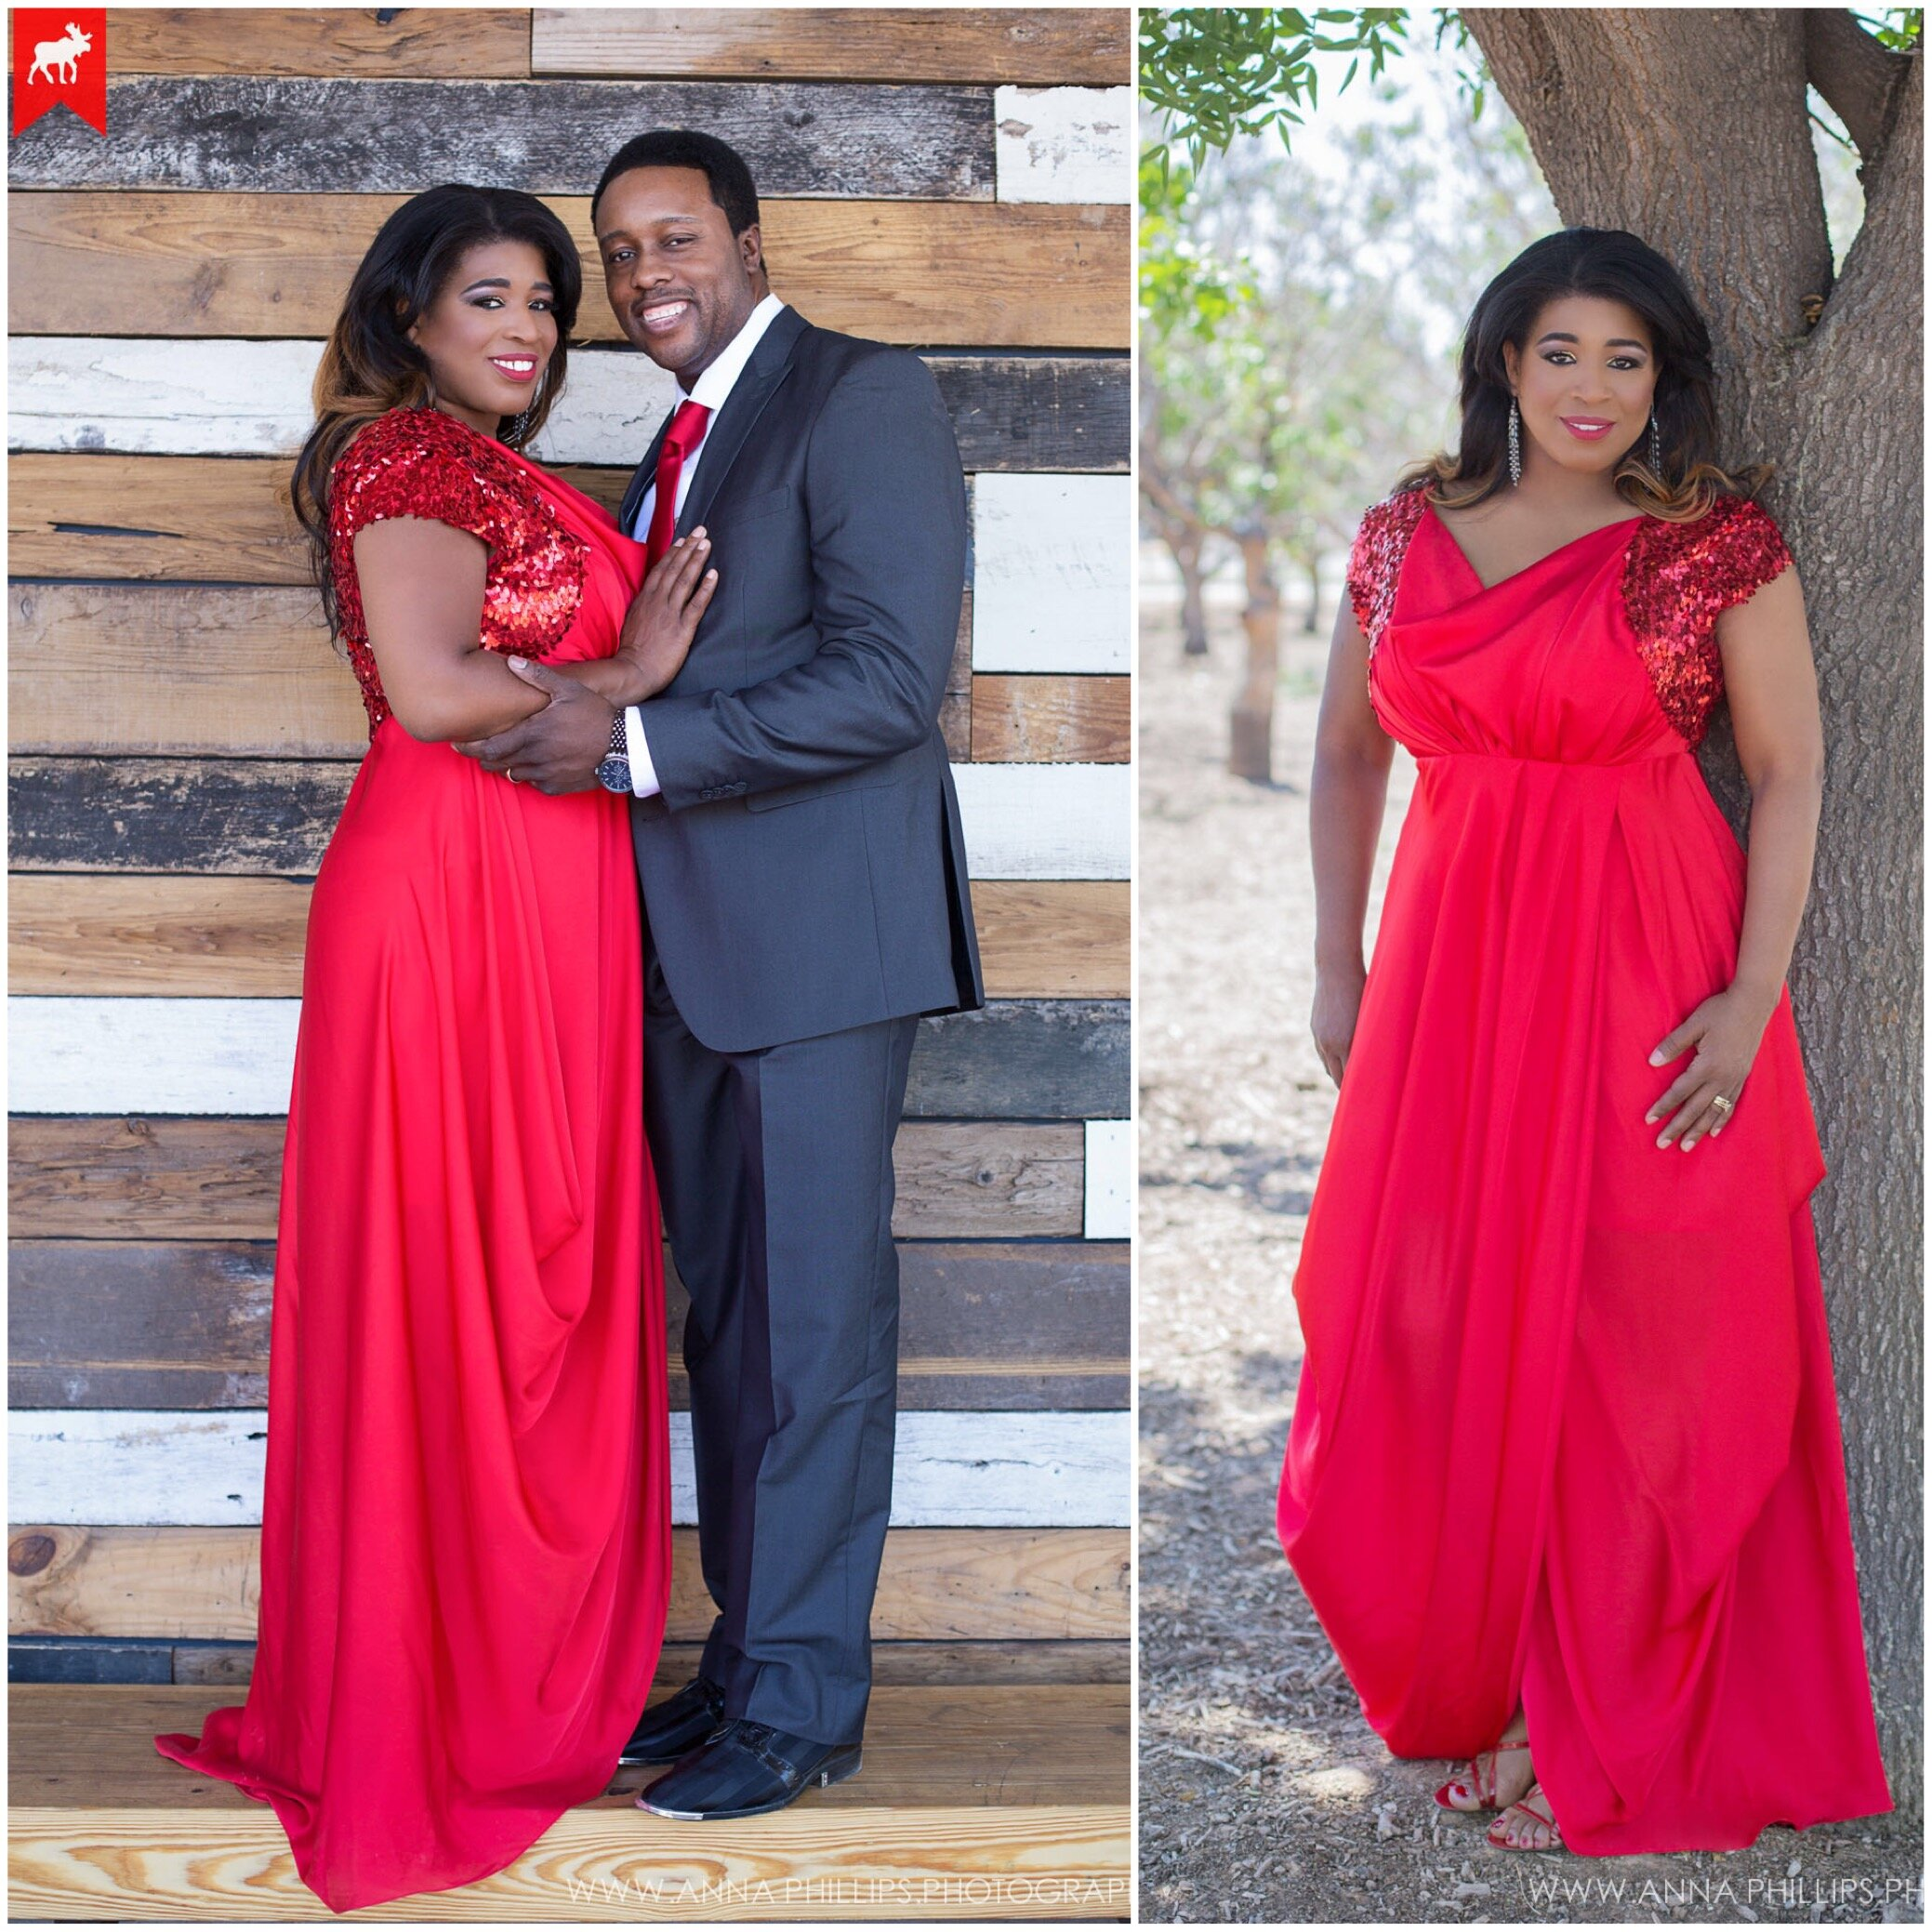 Red satin maxi front draped evening dress with red sequin cap sleeves for Valentines Day husband and wife photo shoot.JPG